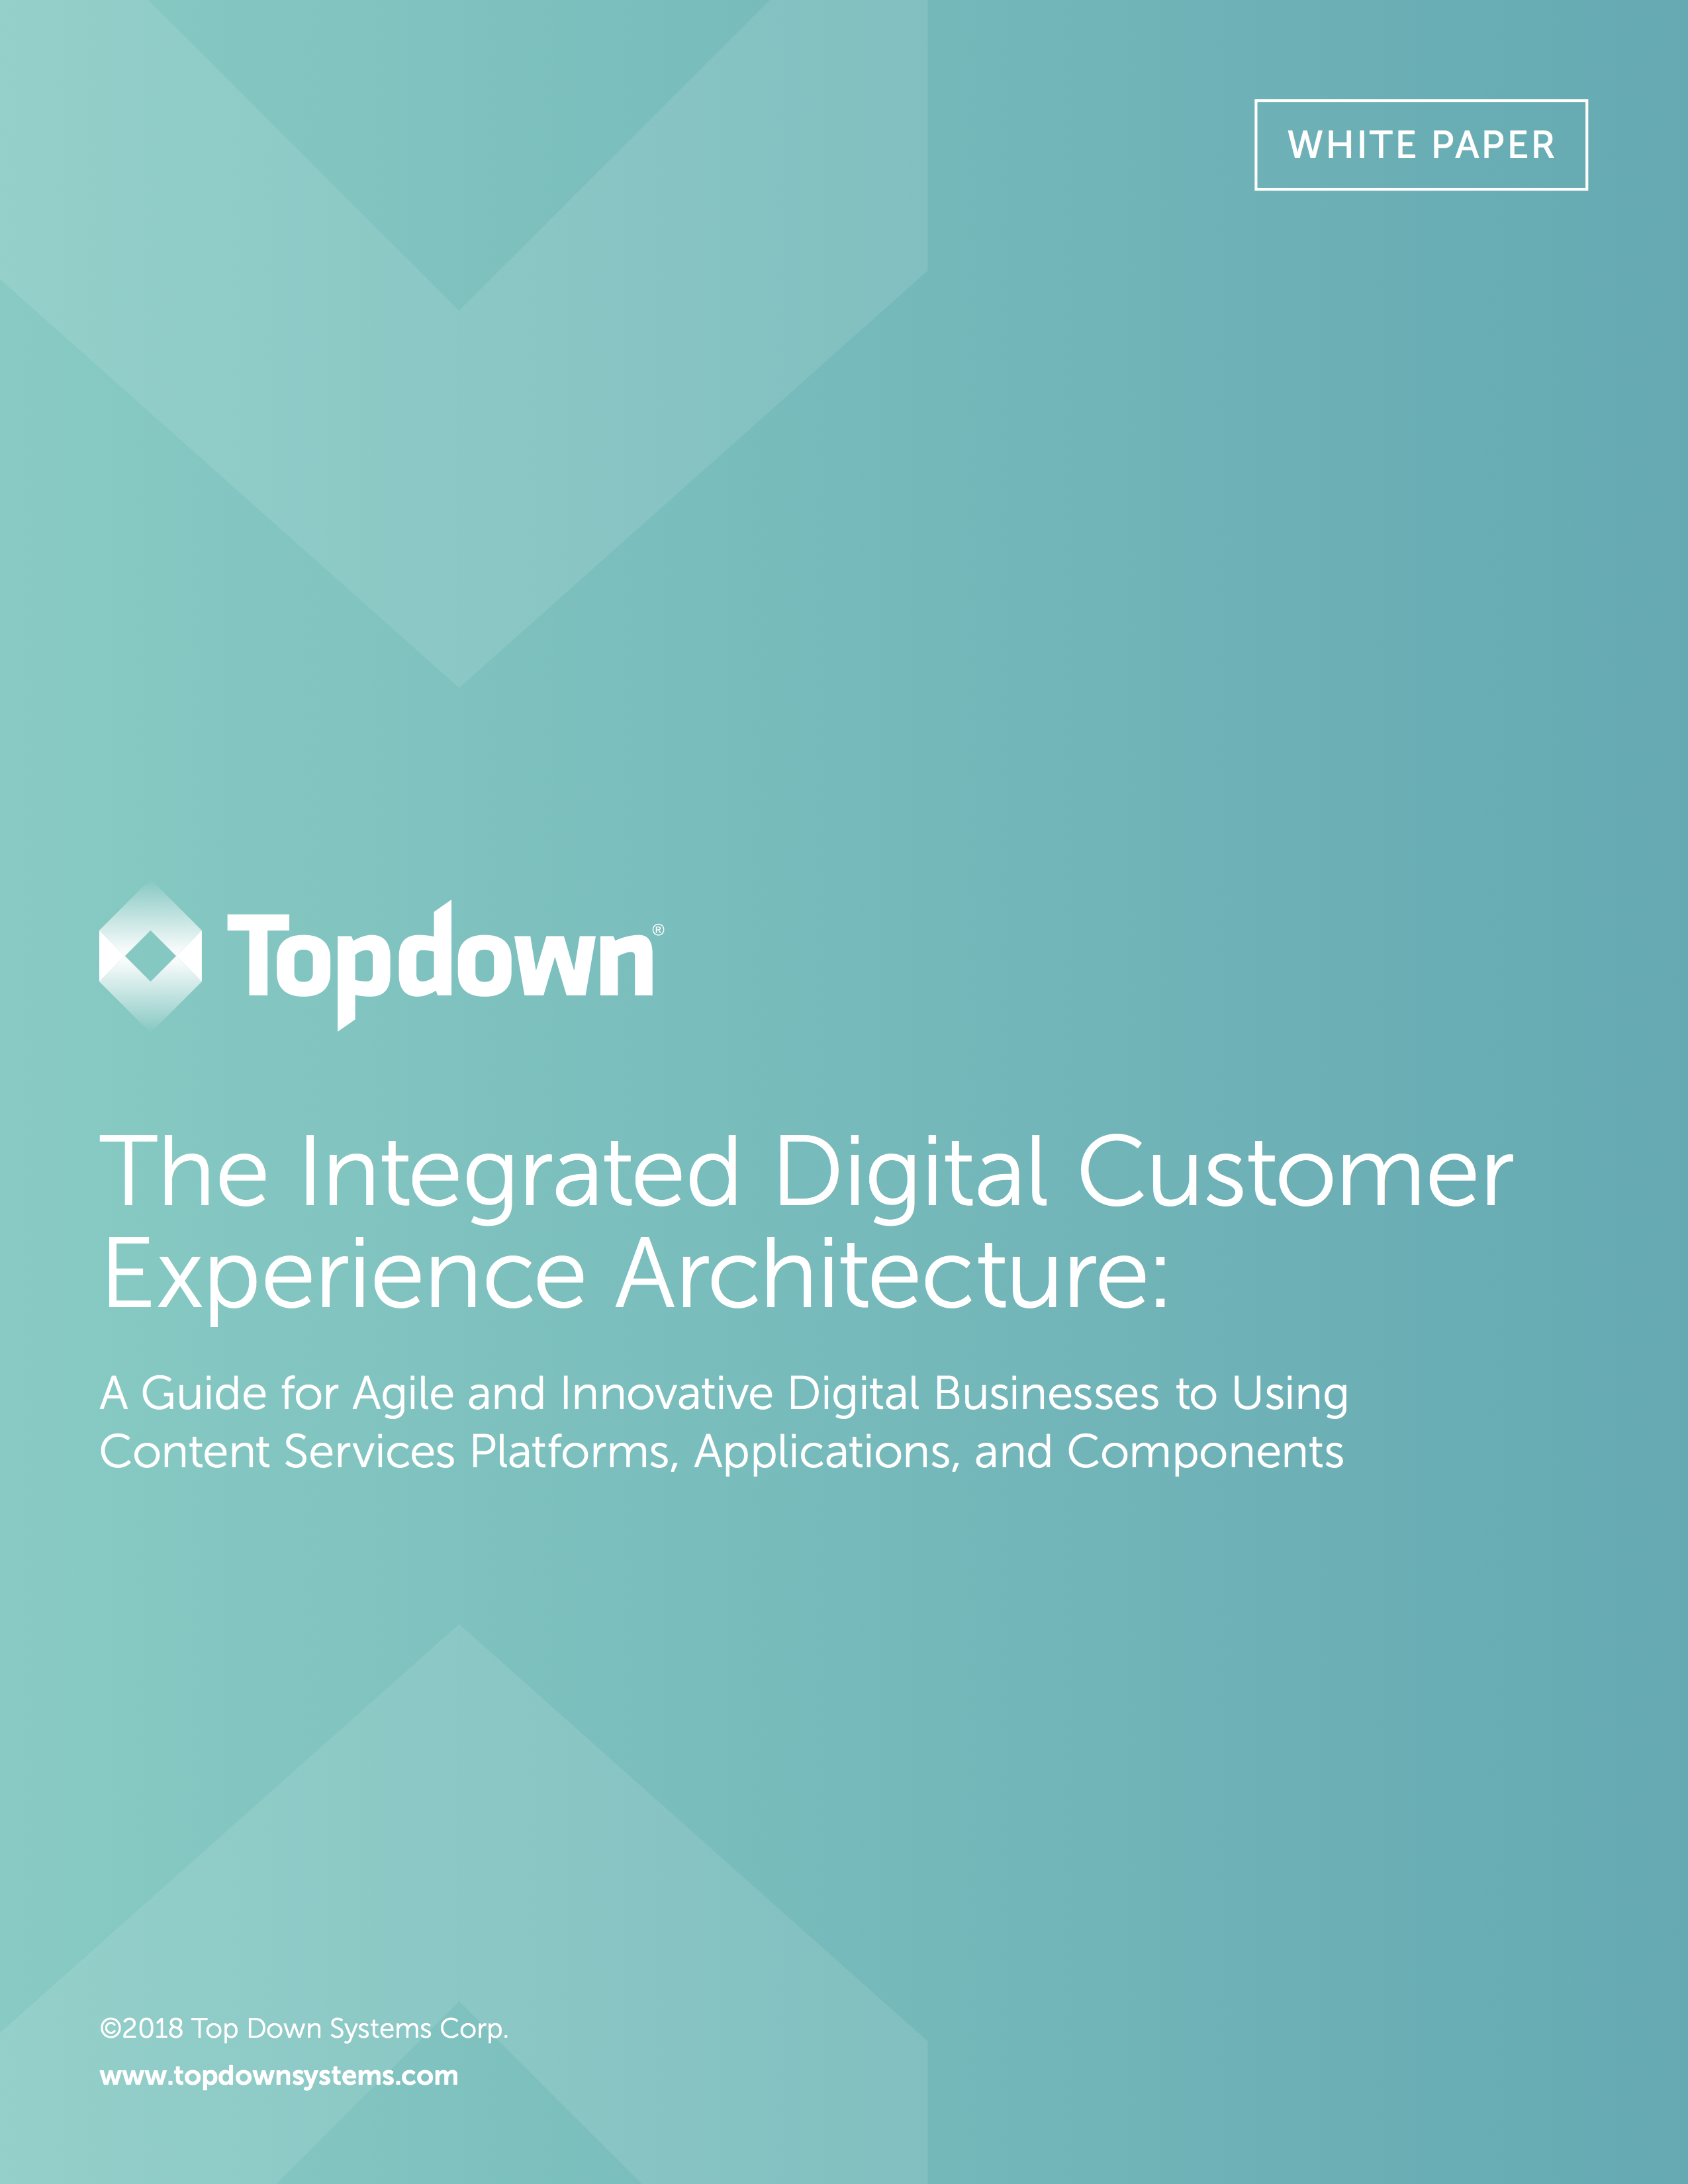 Topdown INTOUCH Content Services White Paper Cover